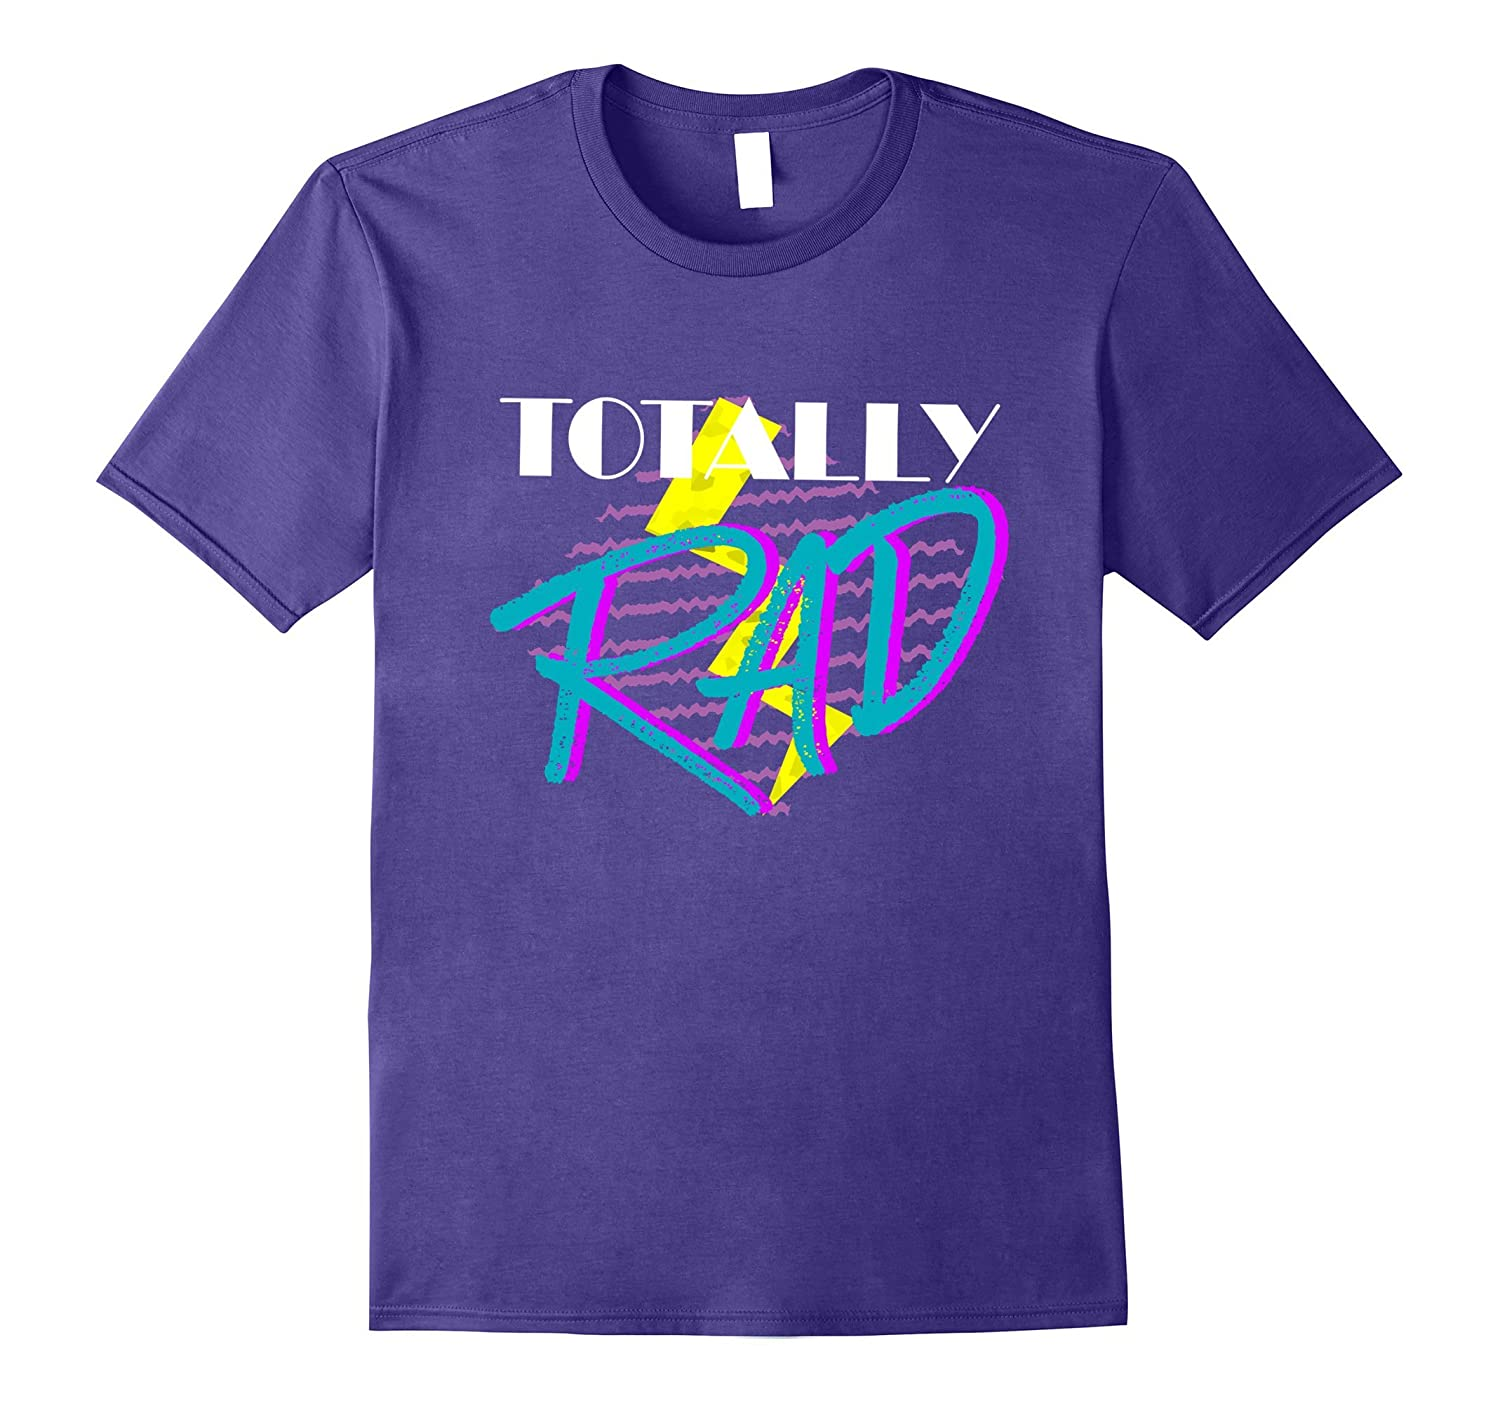 Totally Rad 1980s vintage style costume party t-shirt-T-Shirt